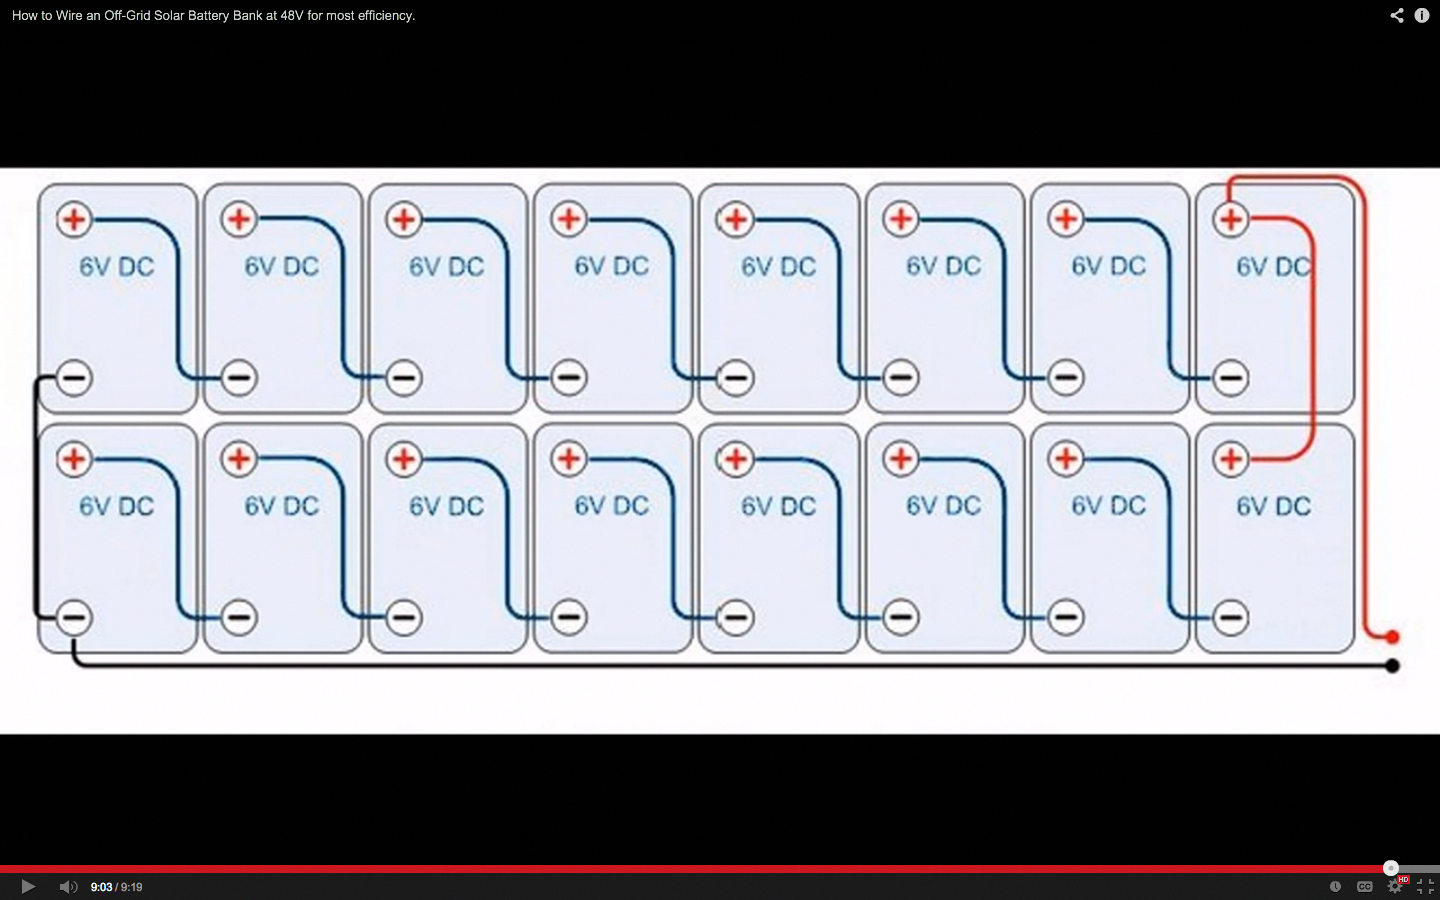 simple battery bank wiring diagram for 48volts dc based on 6v batteries  [ 1440 x 900 Pixel ]